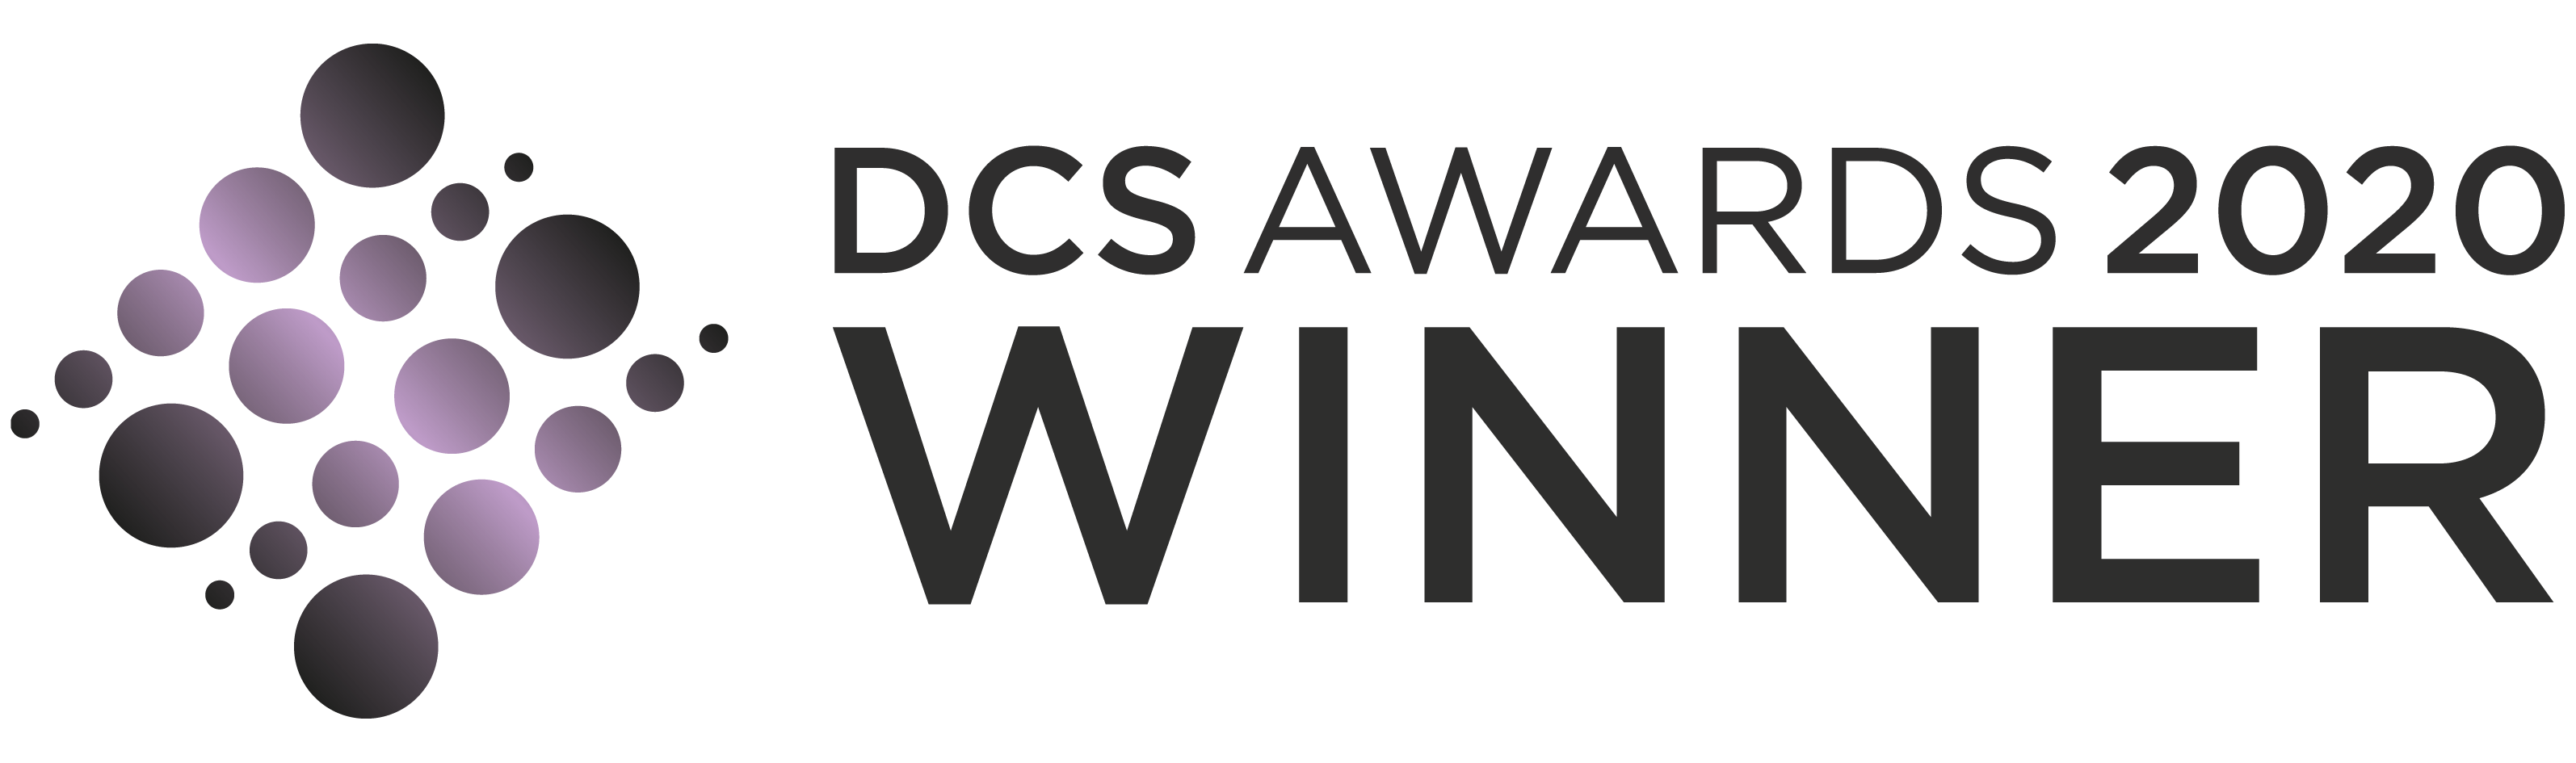 Teledata wins Data Centre Energy Efficiency Project of the Year at Prestigious DCS Awards